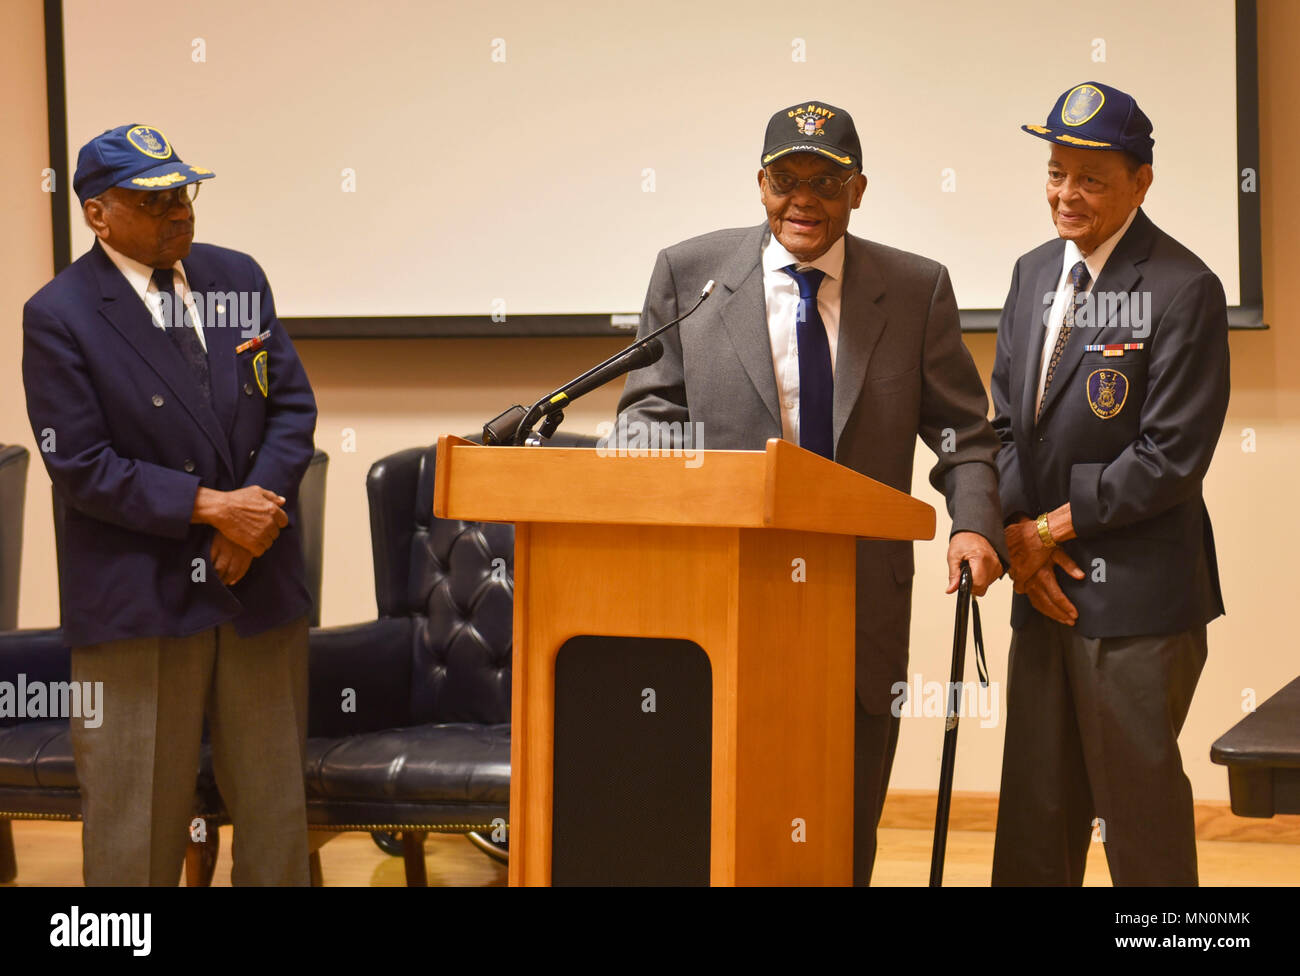 170804-N-VA474-056 WASHINGTON (Aug. 4, 2017) Three of the four surviving veterans of the U.S. Navy B-1 Band gather for a special reunion at the National Museum of the United States Navy to commemorate the 75th anniversary of their enlistment. Veterans Simeon Holloway, Calvin Morrow, and Jewitt L. White joined author Alex Albright to discuss his book, The Forgotten First: B-1 and the Integration of Modern Navy, the band's formation and significance. (U.S. Navy photo by Public Affairs Specialist Monee' Cottman/Released) - Stock Image